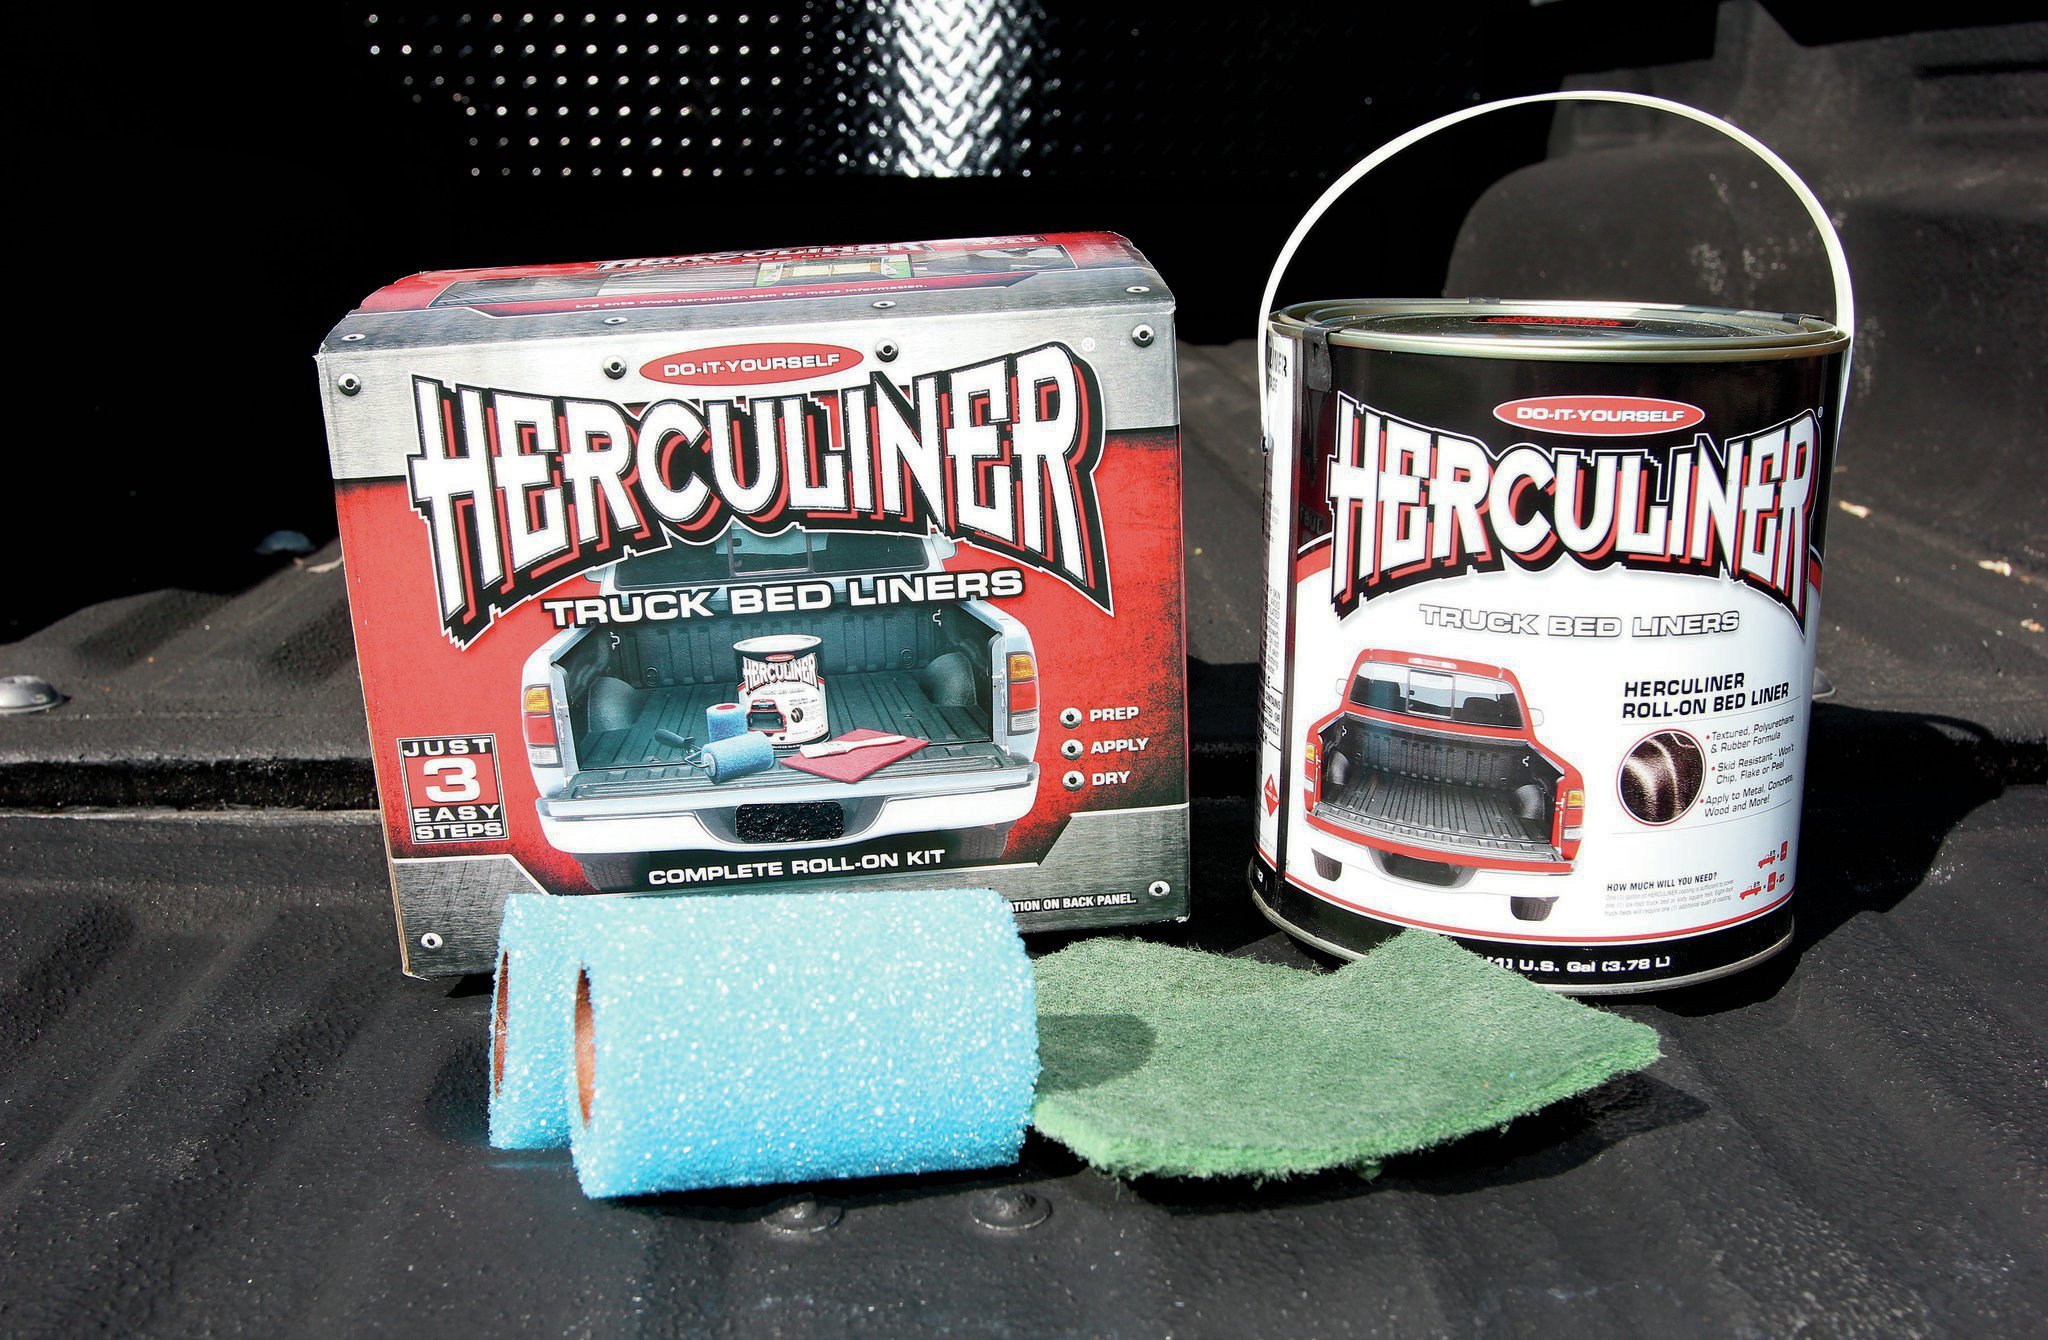 Best ideas about DIY Bed Liner Kit . Save or Pin Herculiner DIY Roll on Bedliner Kit How to & Image Now.